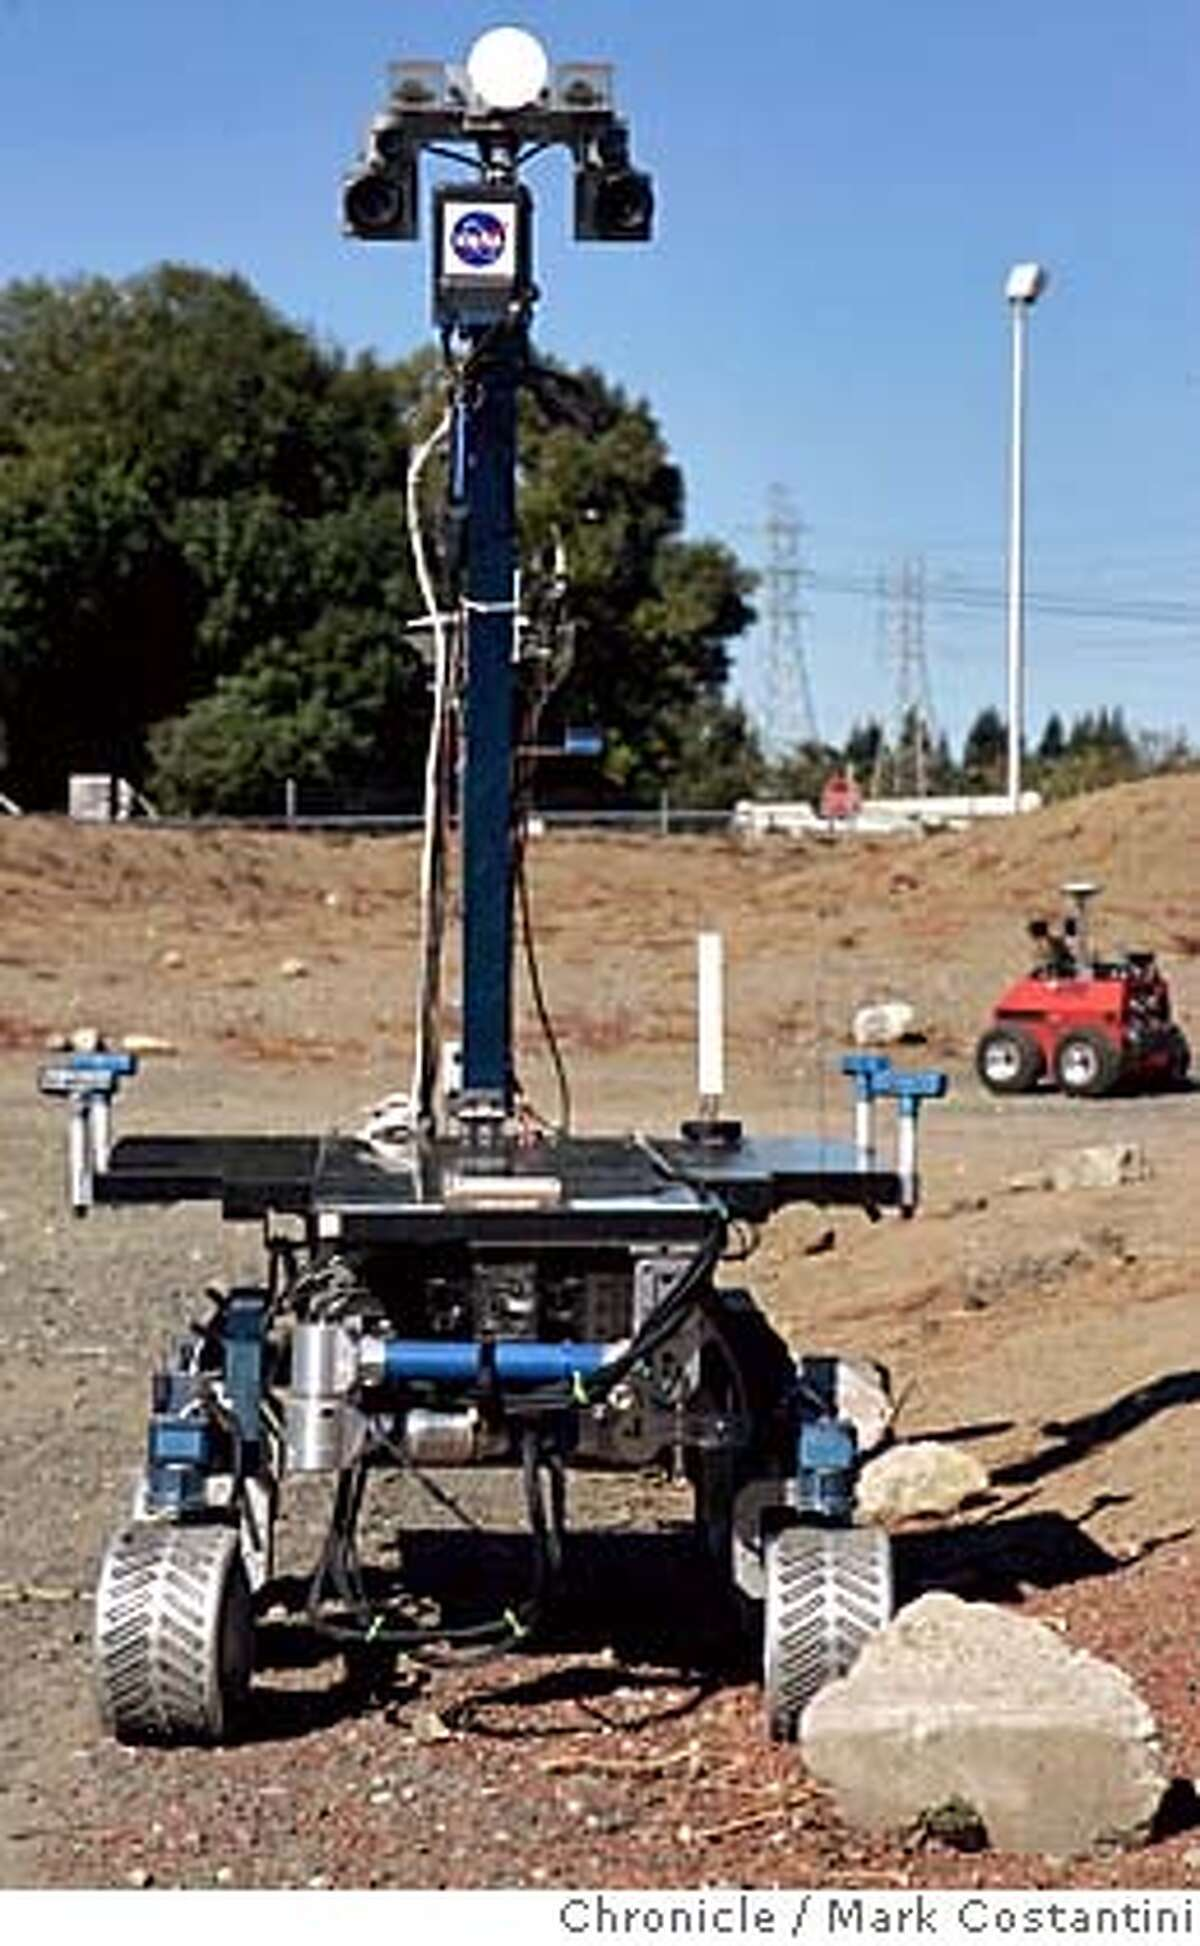 """robots04_033_mc.jpg """"K-9"""" the robot. 'Marscape' at NASA Ames Research Center, Moffett Field, Calif., Monday, Oct. 3, from 11 a.m. to 2 p.m. PDT to view prototype space robots in action. Reporters will be able to interview NASA researchers about the artificial intelligence that may some day help robots and human beings on Earth and Mars work together. Photograph by Mark Costantini/S.F. Chronicle. MANDATORY CREDIT FOR PHOTOG AND SF CHRONICLE/ -MAGS OUT"""